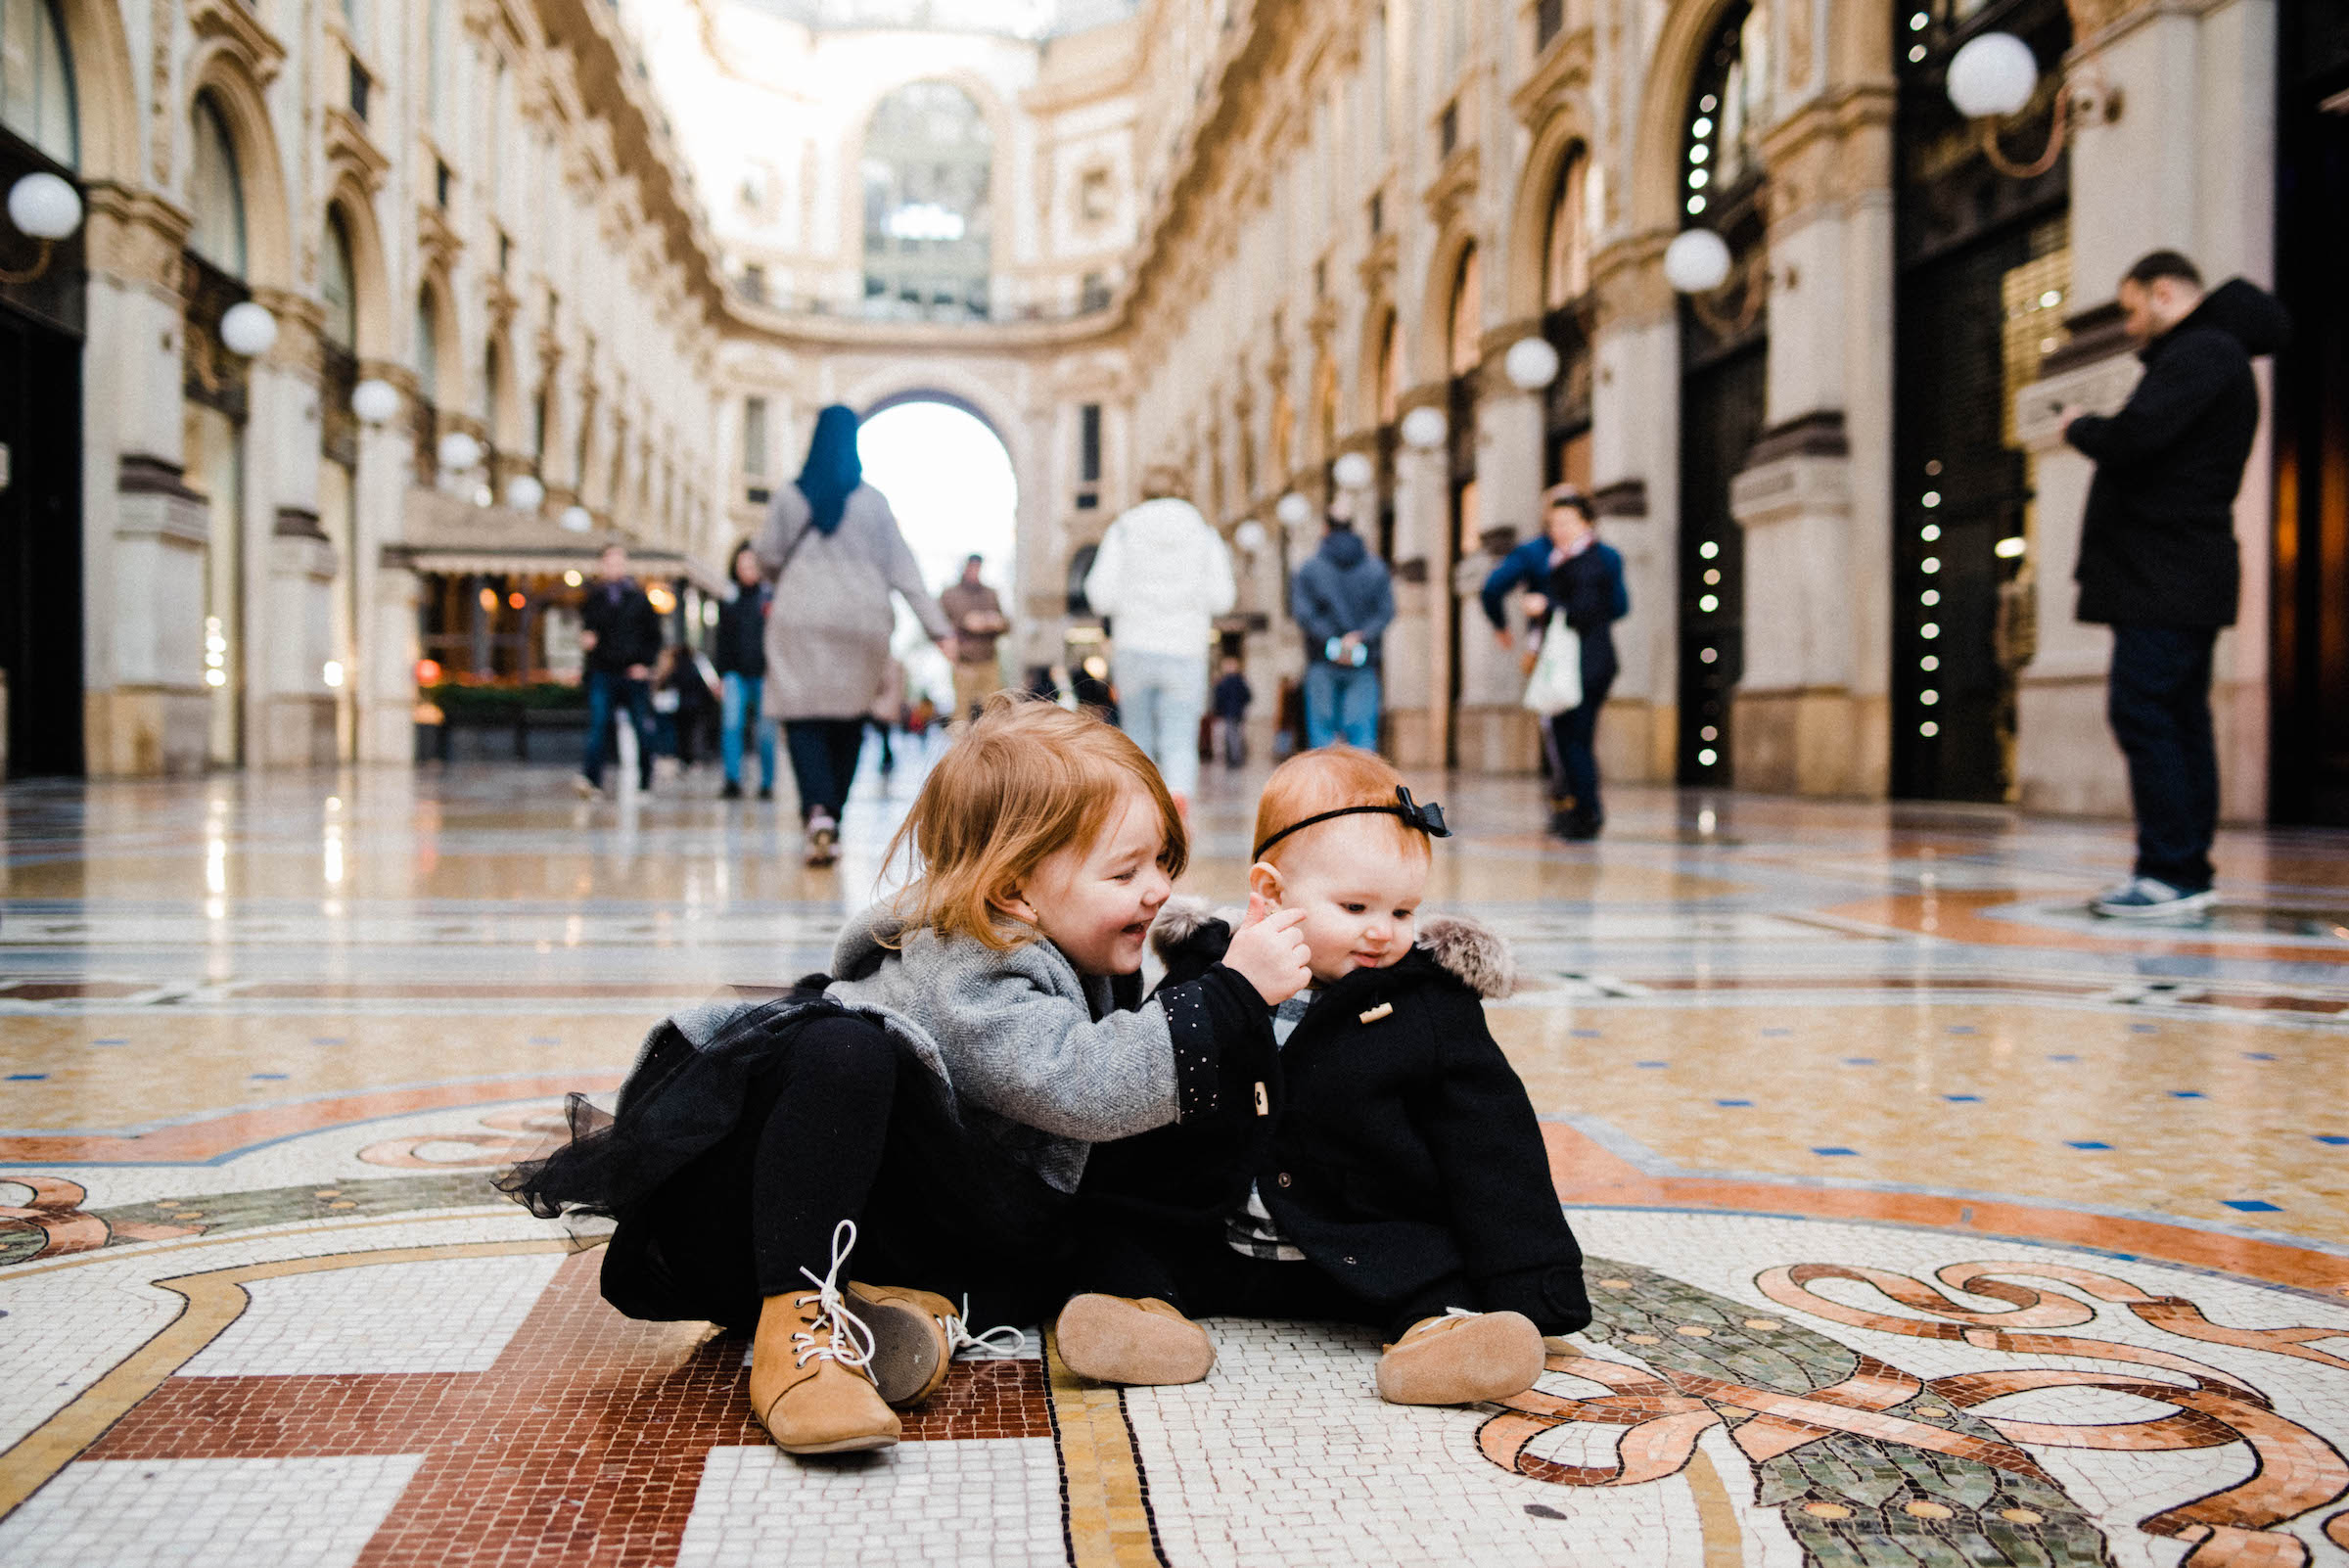 Italian Family Photographer's work featuring two little girls, who are sisters, sitting in the Galleria Vittorio Emanuele in Milan during their Family Portrait Session.